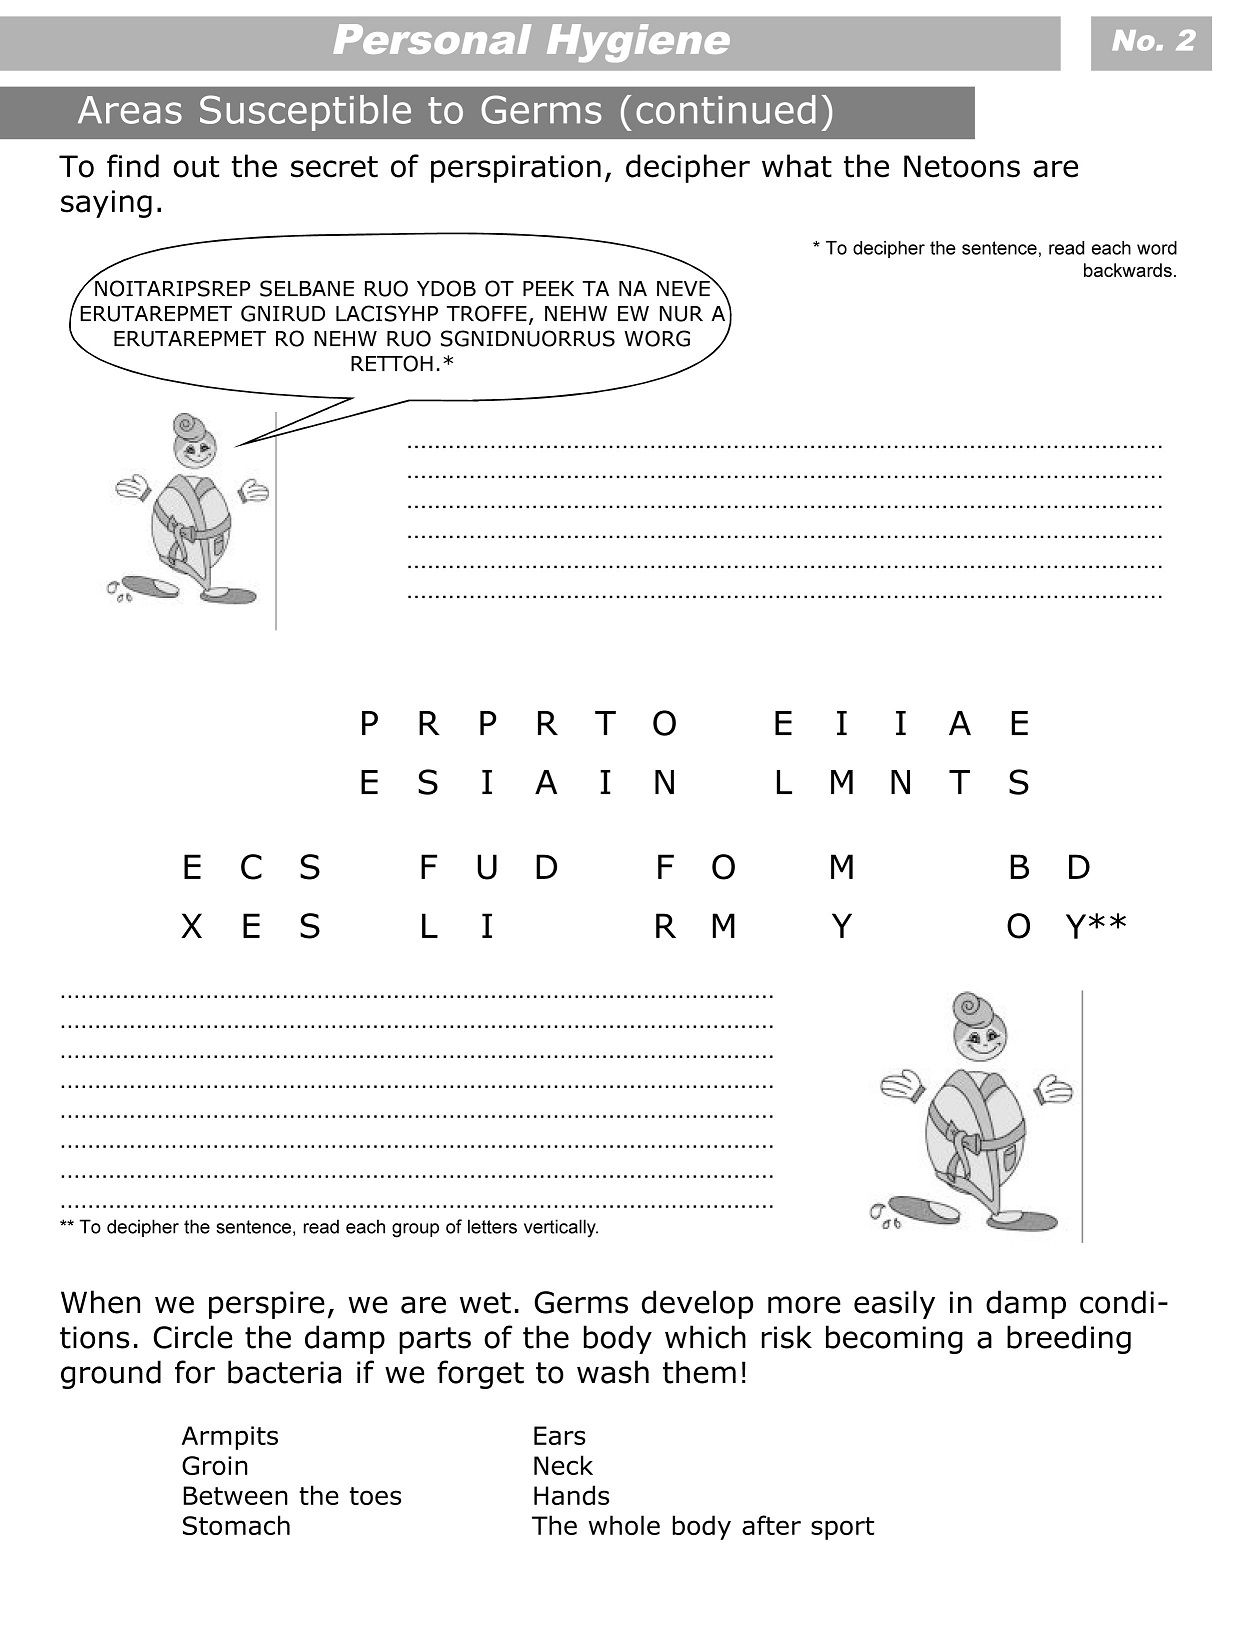 Printables Hygiene Worksheets For Elementary Students personal hygiene worksheet 2 plan and worksheets for kids level 3 2